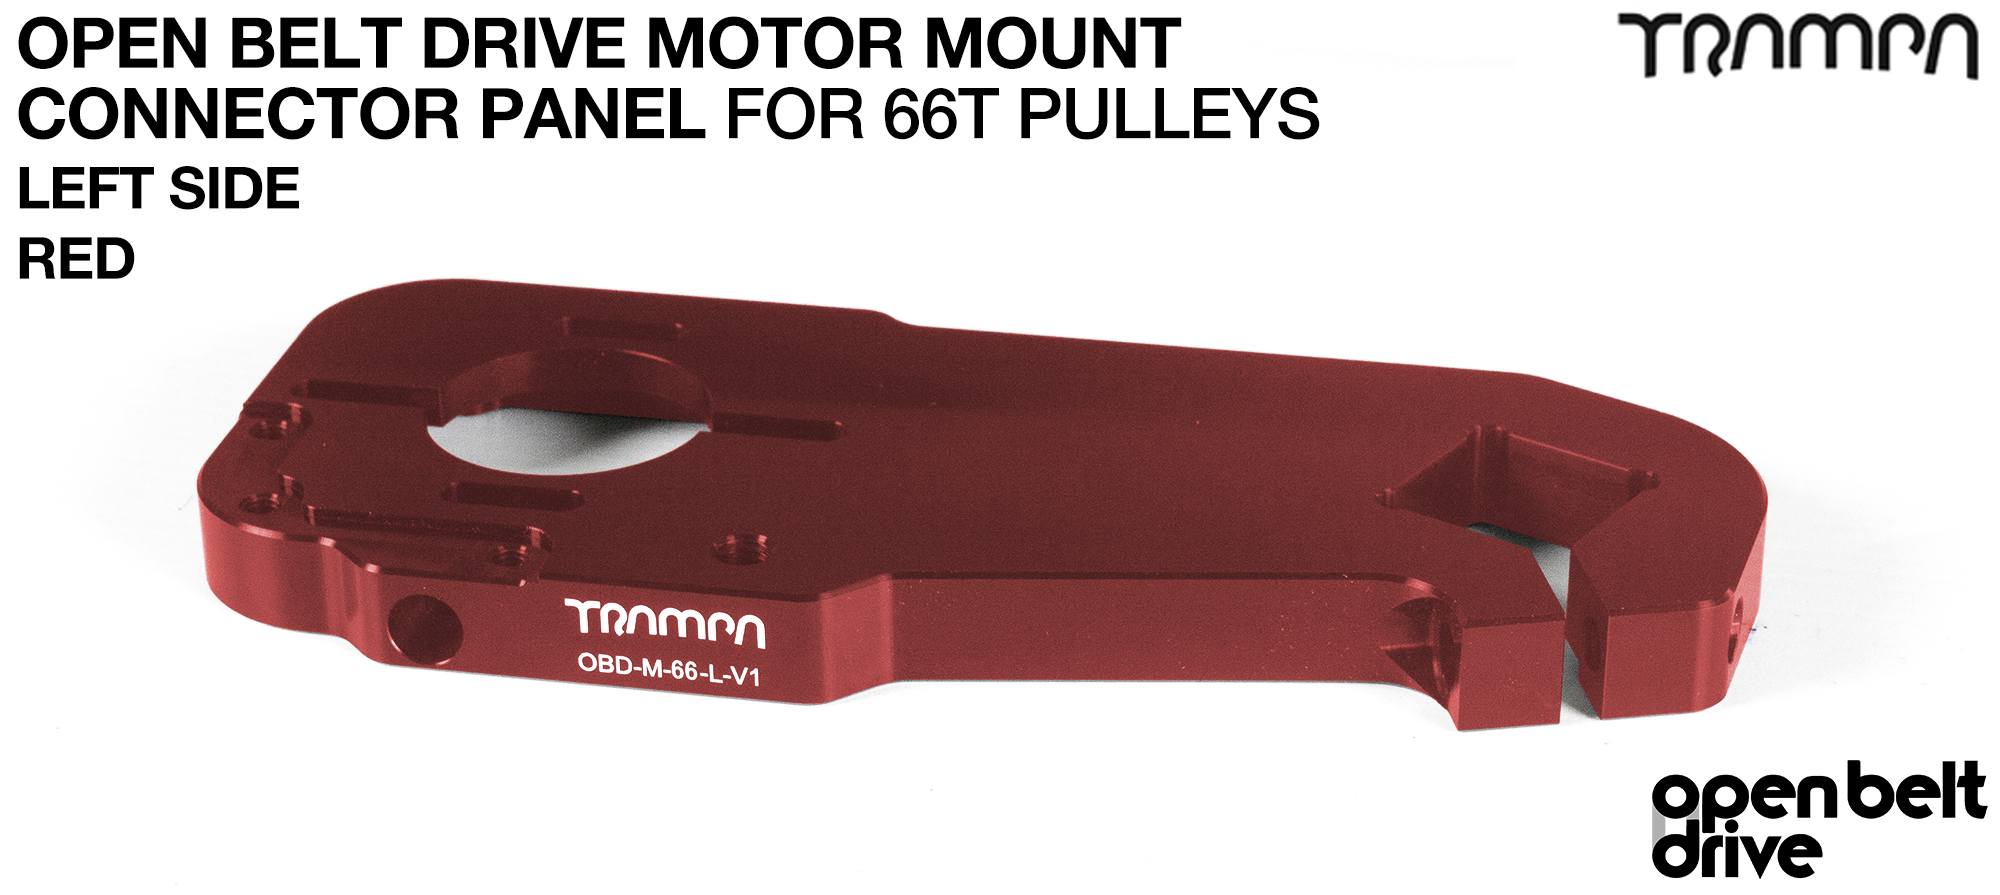 OBD Motor Mount Connector Panel for 66 tooth Pulleys - REGULAR - RED